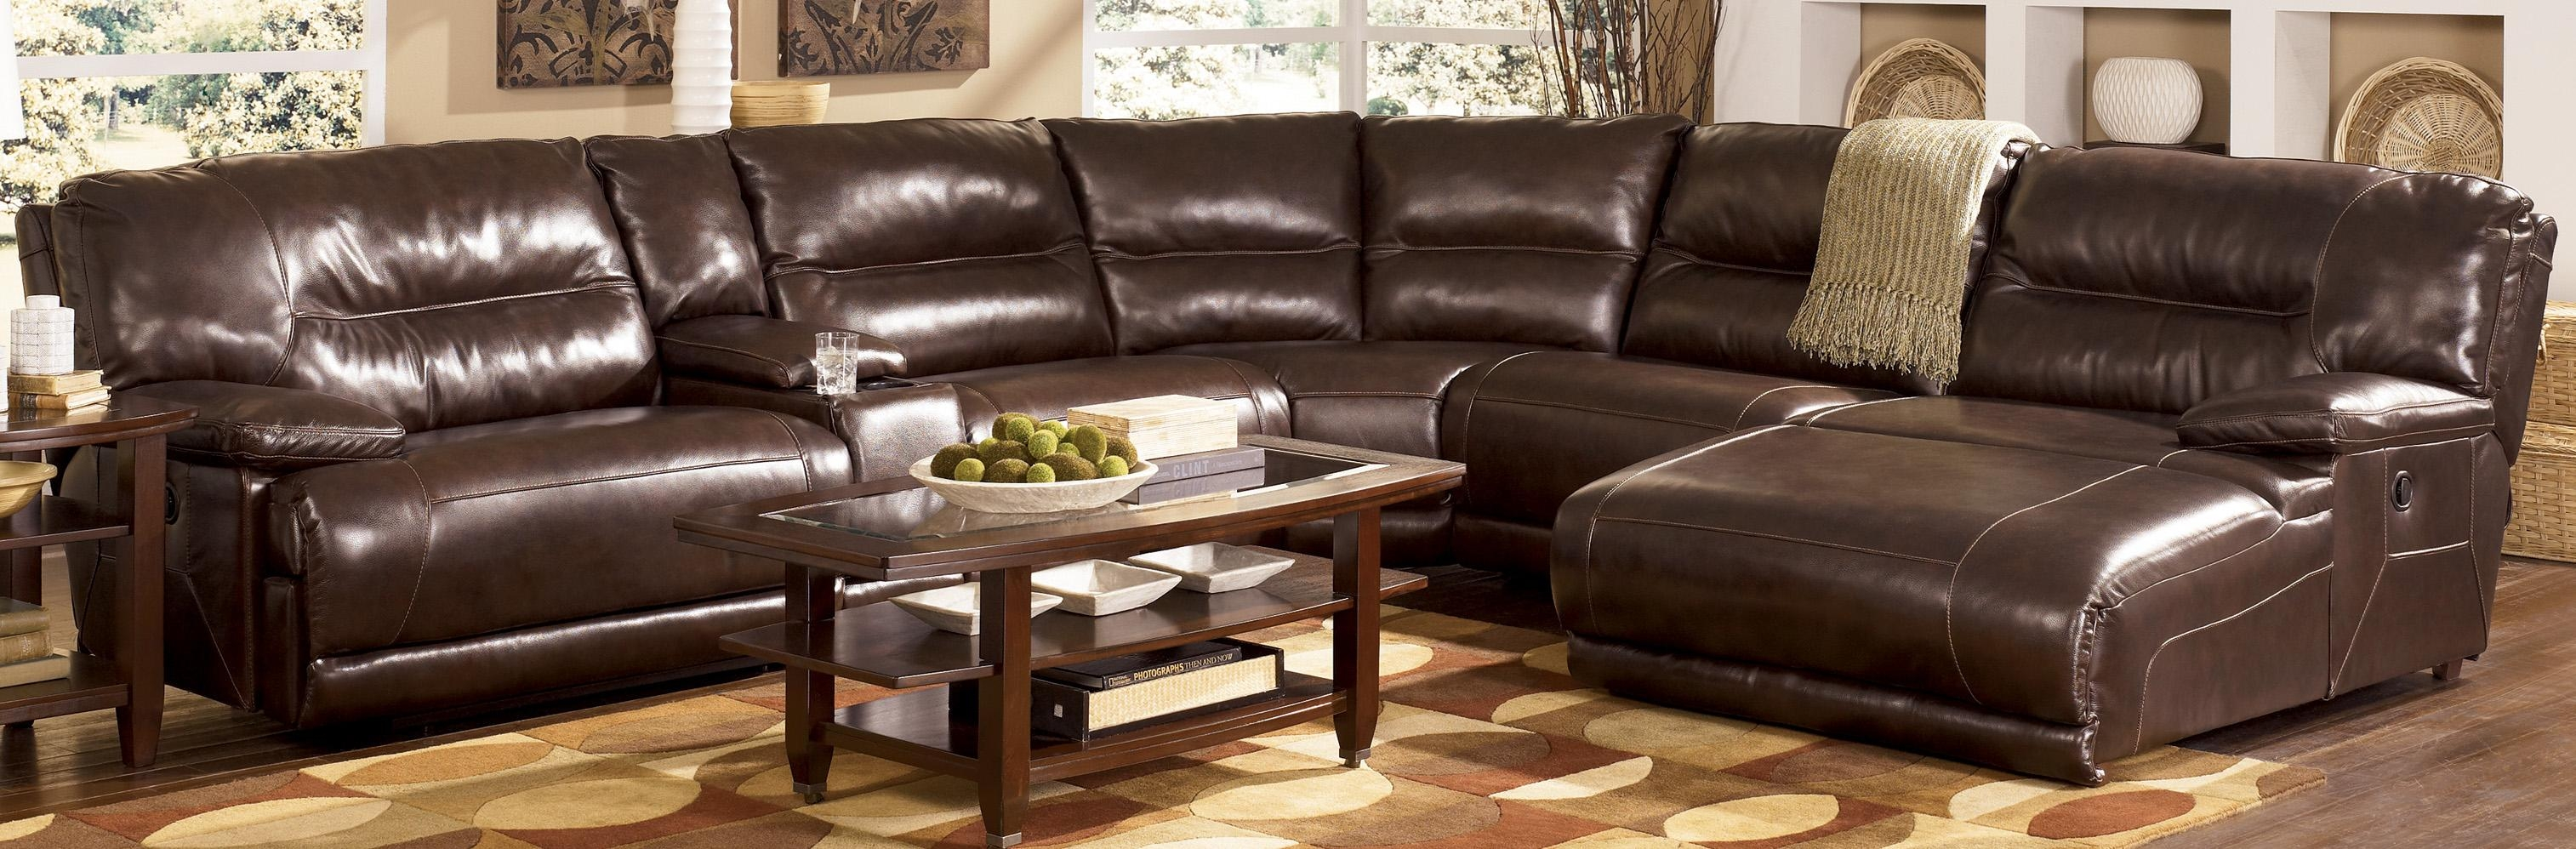 Furniture: Jedd Fabric Reclining Sectional Sofa | Sectional For Jedd Fabric Reclining Sectional Sofa (View 4 of 20)